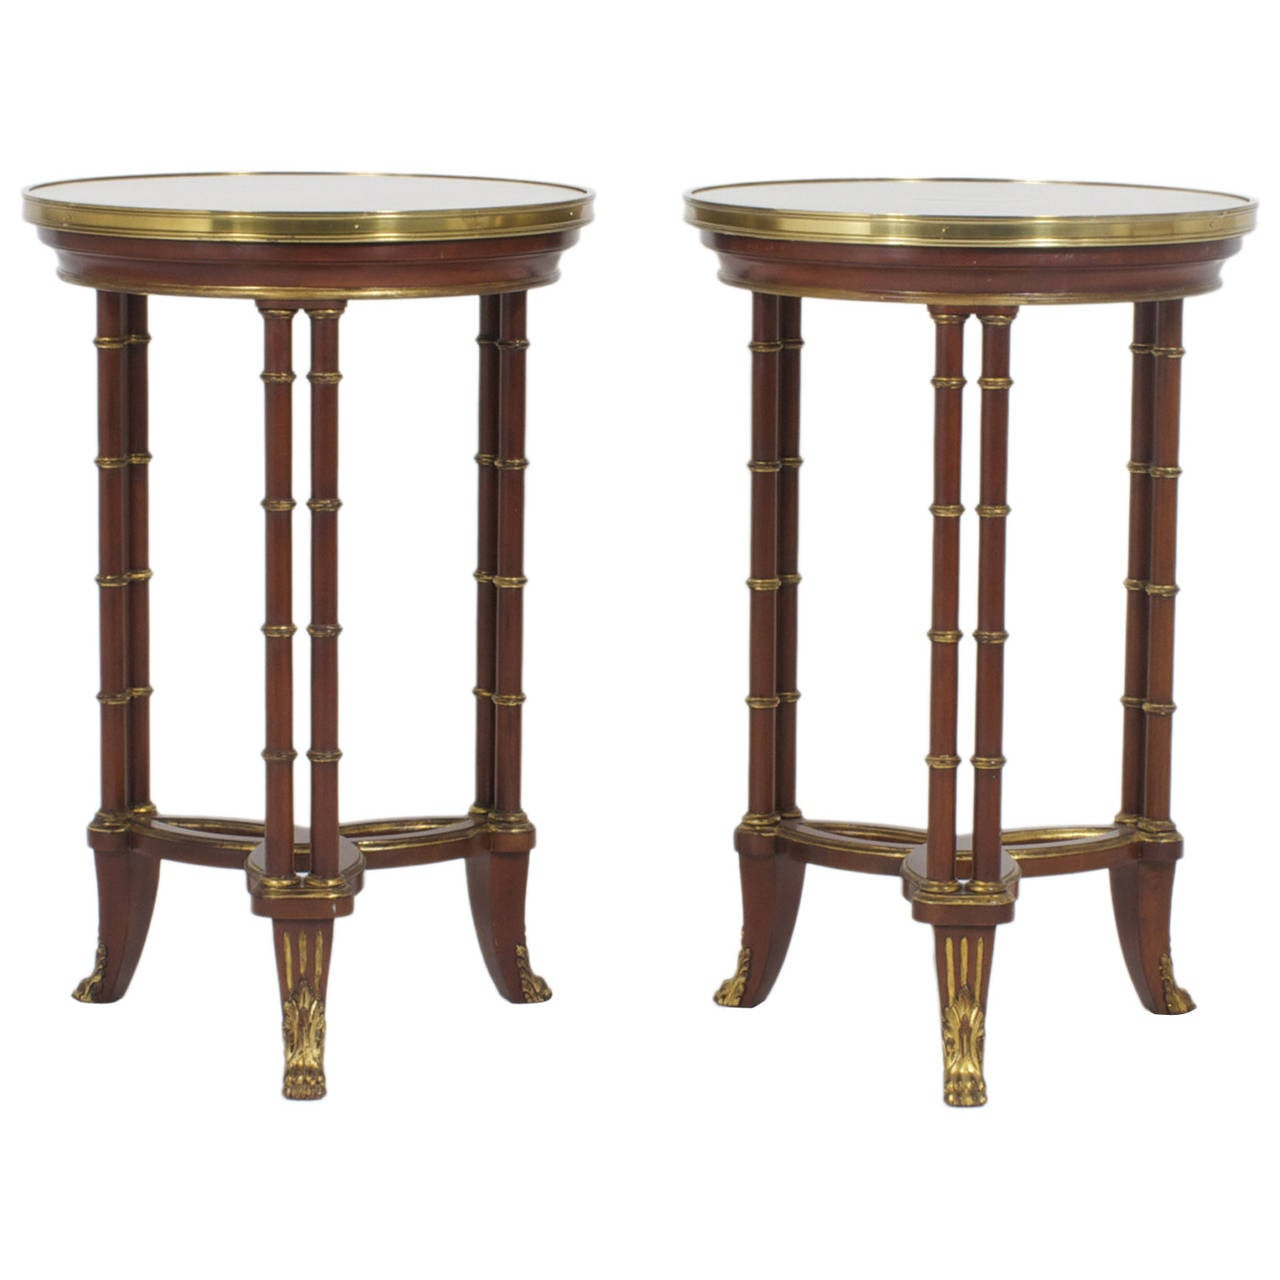 Pair of Round Faux Bamboo with Brass Accents Tables